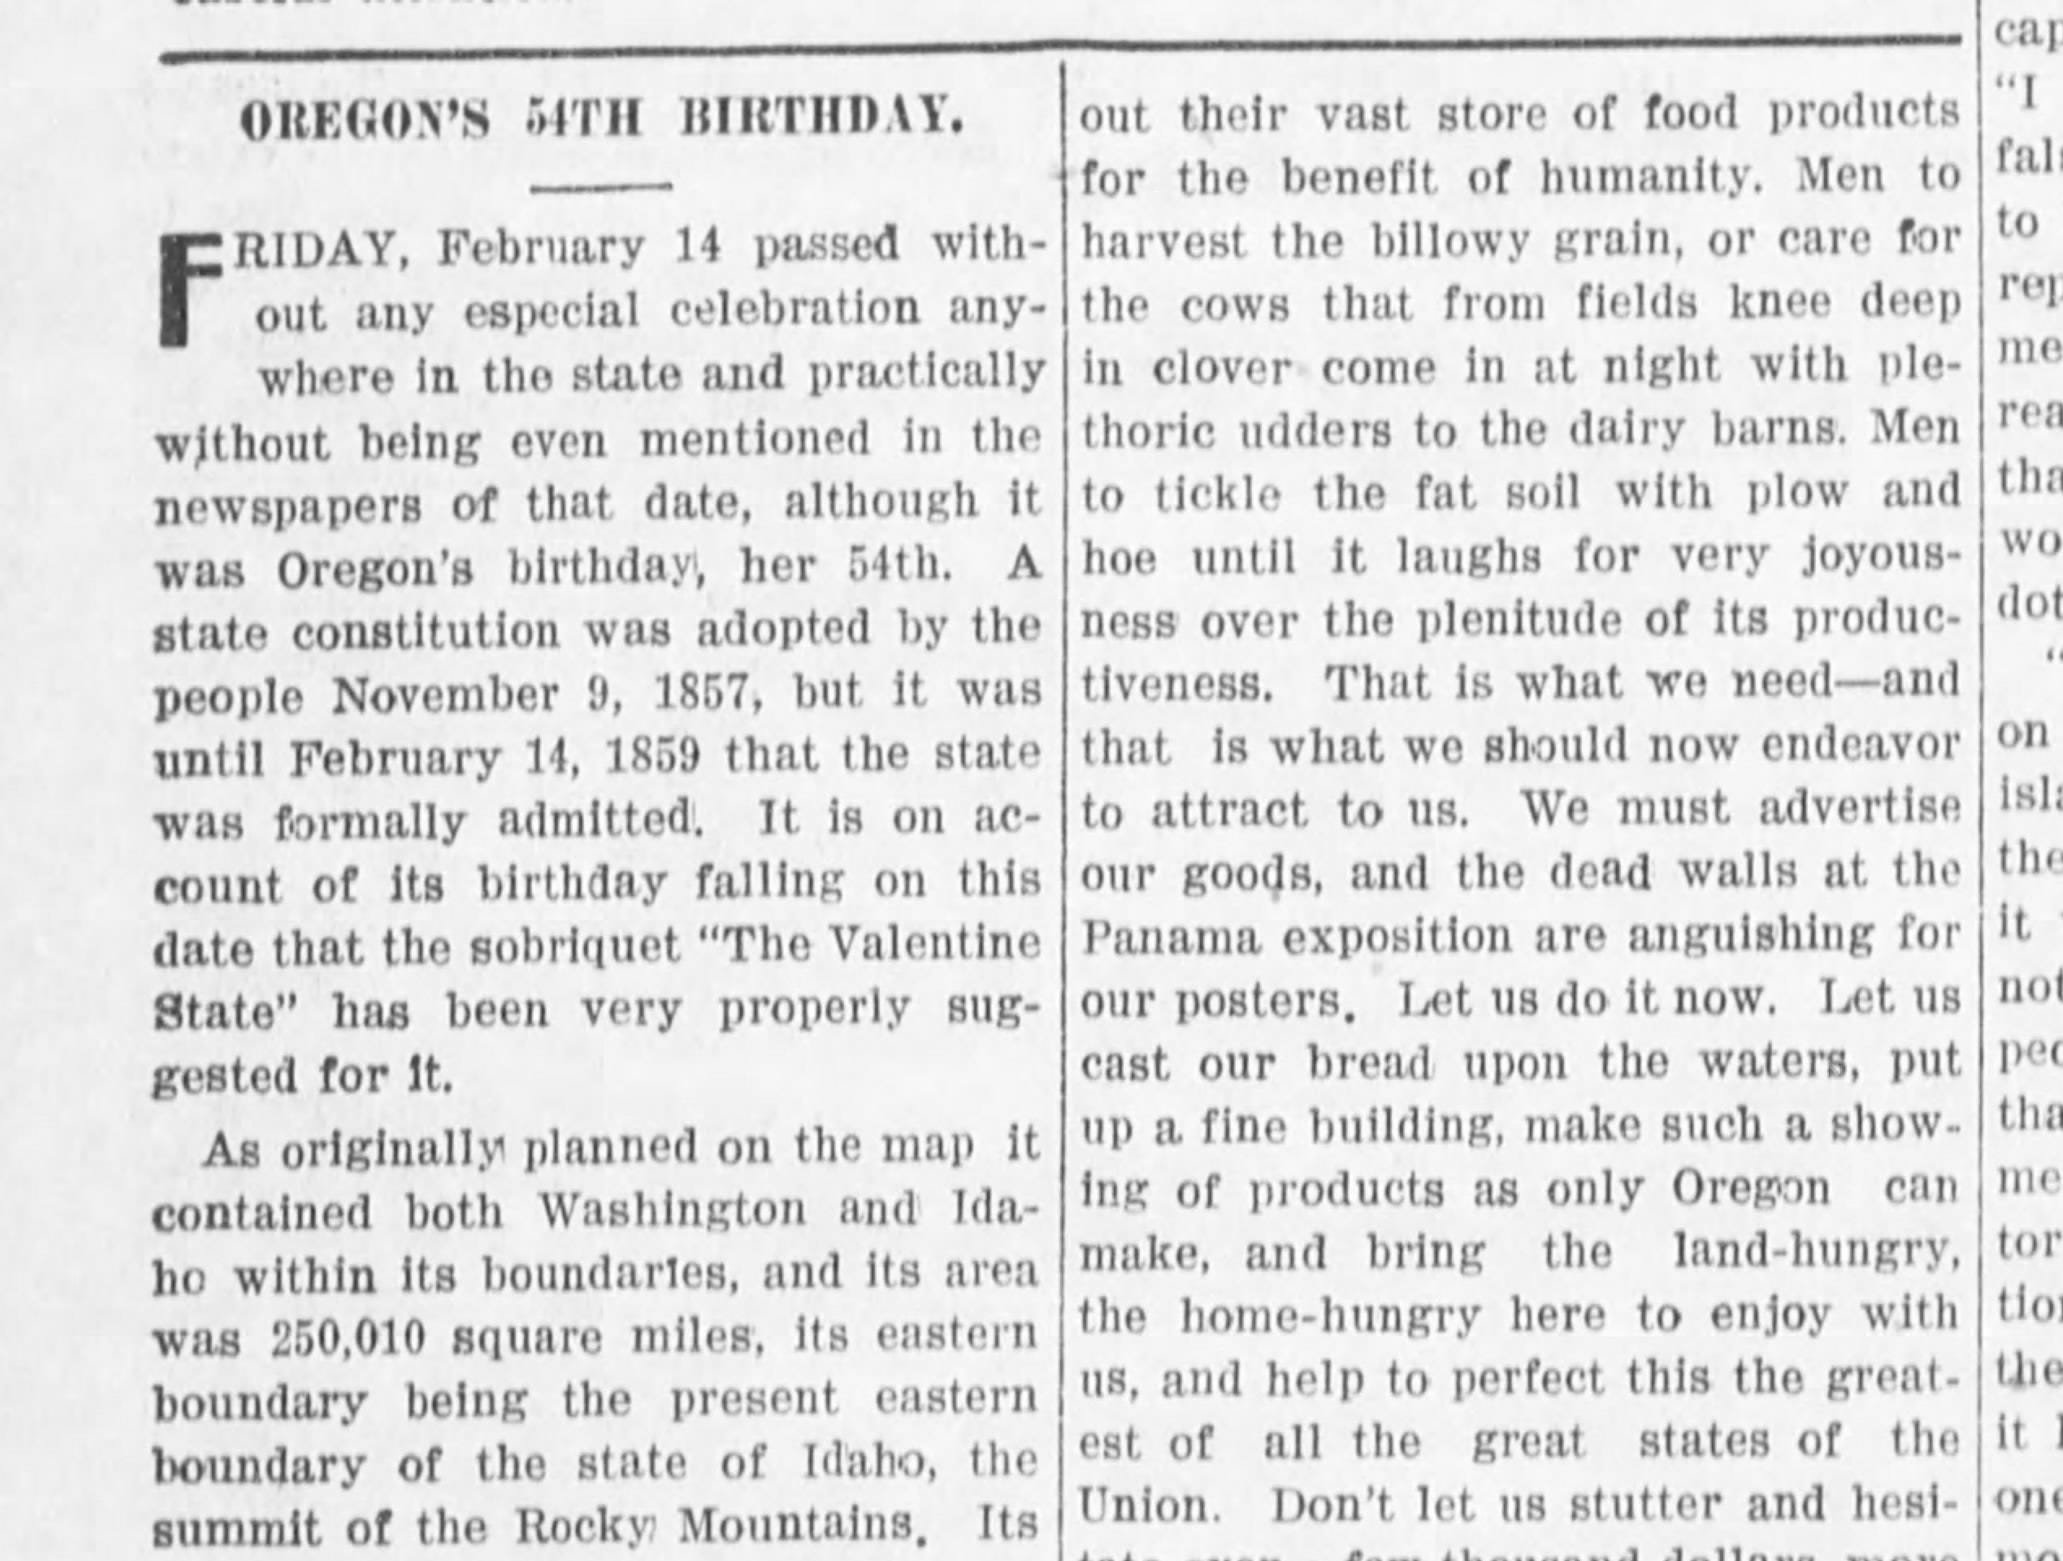 """The editorial page of the Capital Journal on Feb. 15, 1913 notes Oregon's 54th birthday """"passed without any especial celebration anywhere in the state and practically without being even being mentioned in newspapers of that date ..."""""""